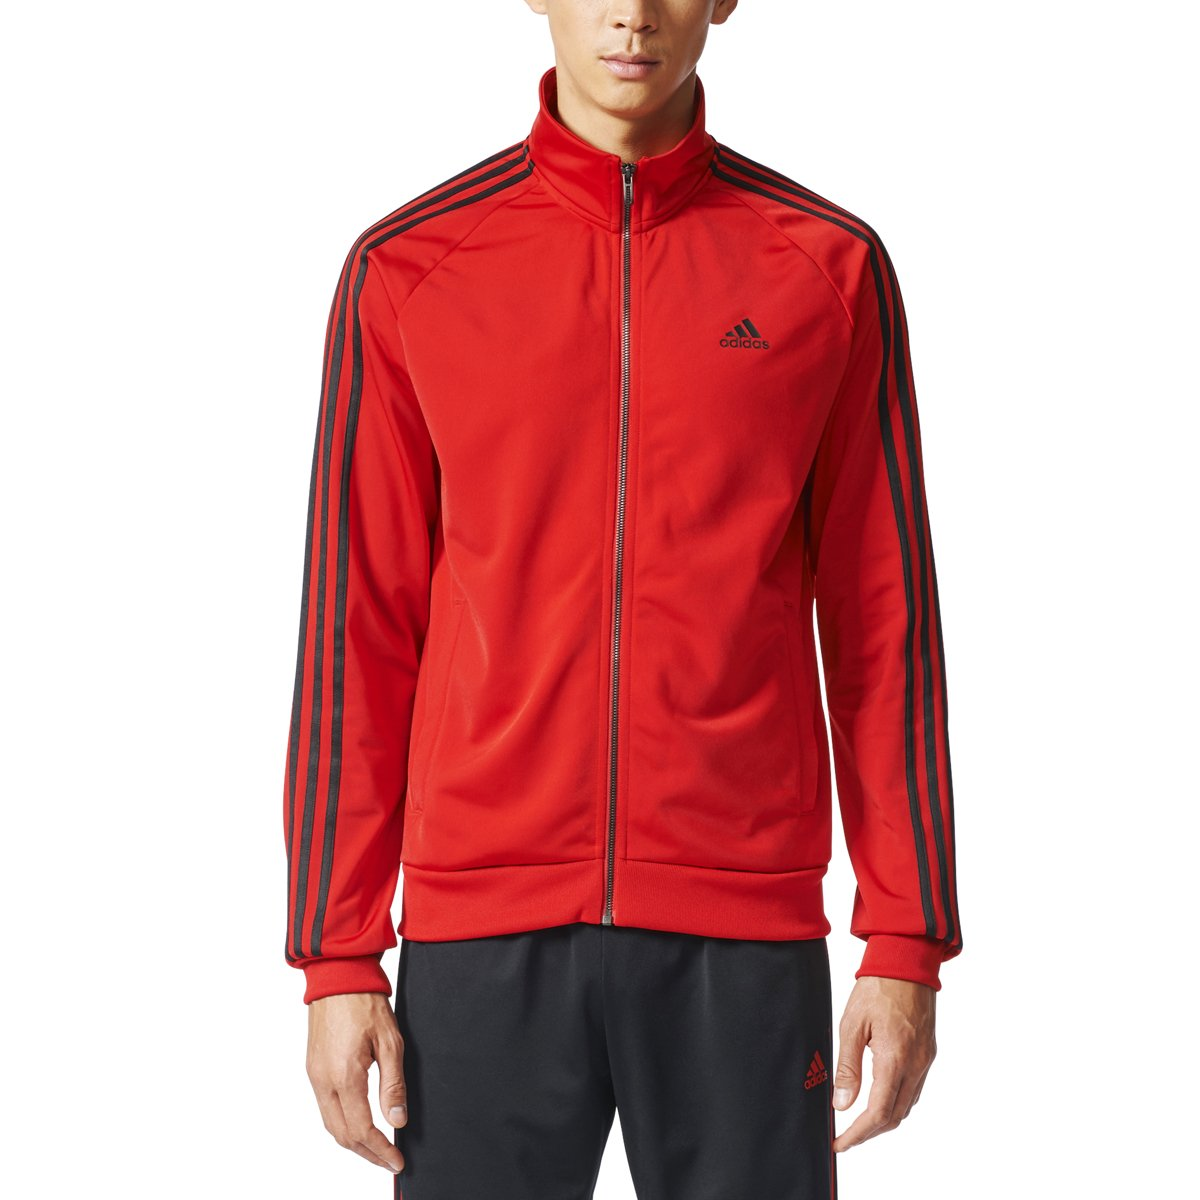 adidas Men's Essentials 3-Stripe Tricot Track Jacket, Scarlet/Black, X-Small by adidas